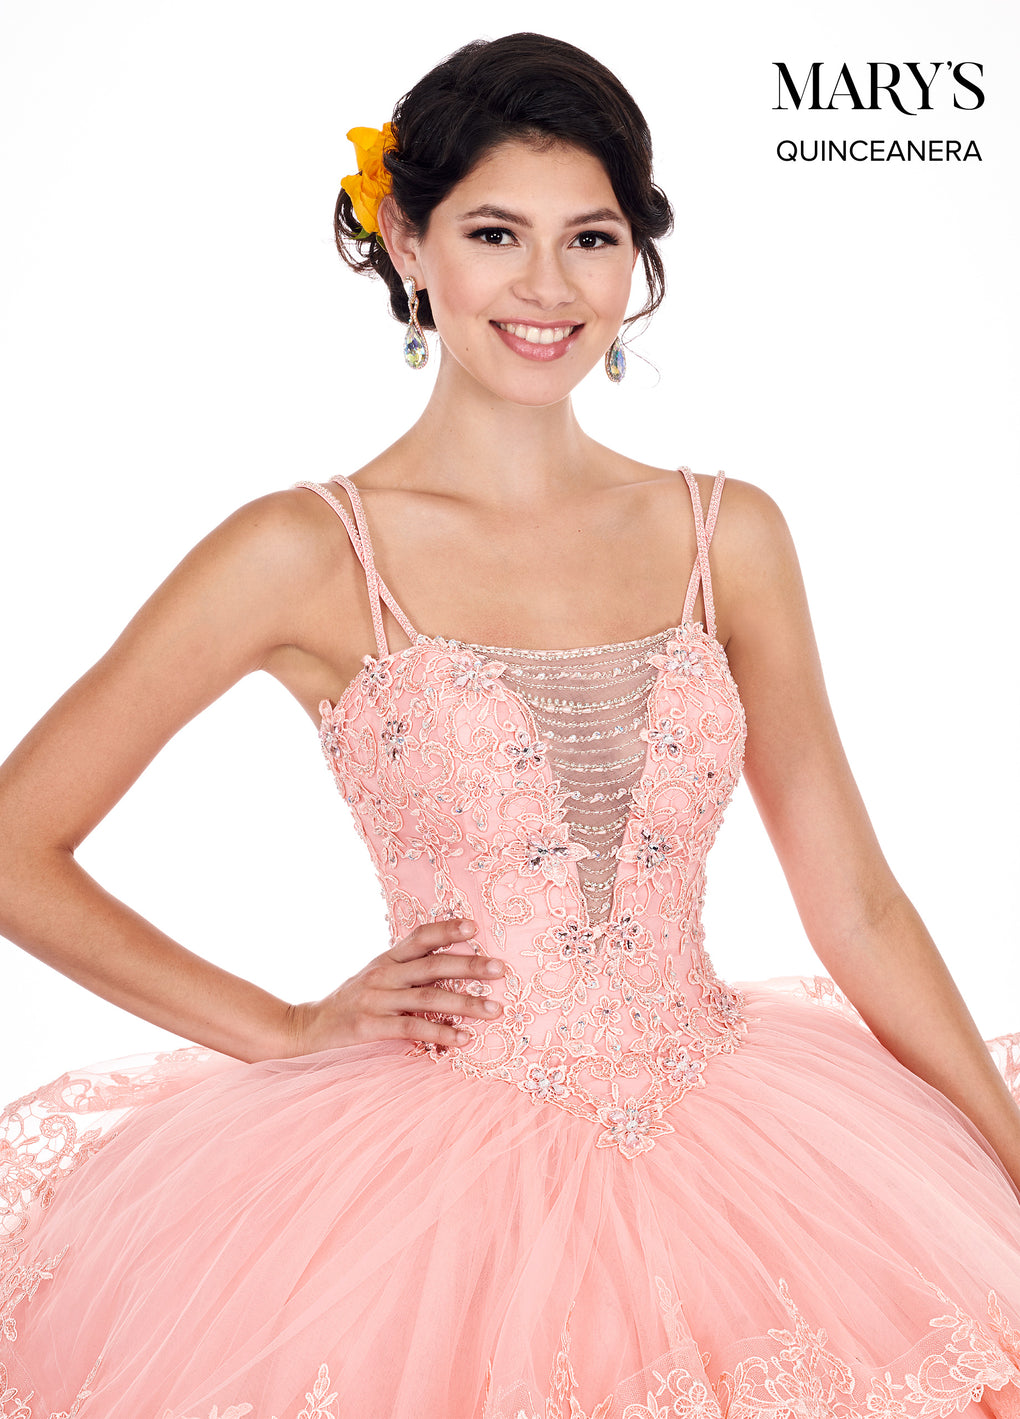 Marys Quinceanera Dresses in Indigo, Rum Pink, or Mint Color